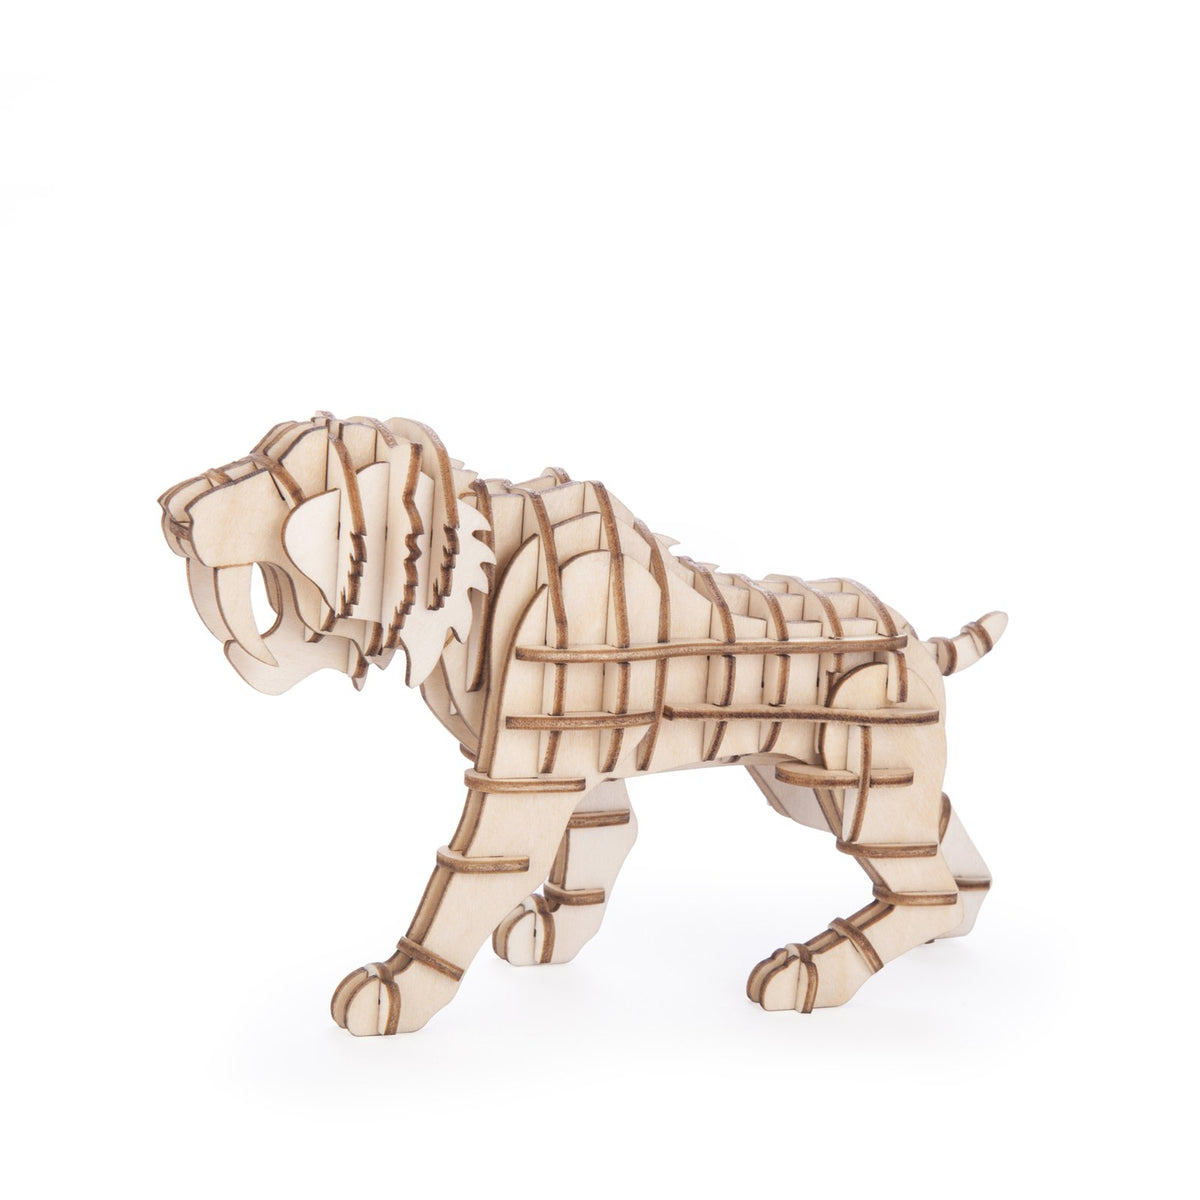 3D Wooden Sabre Tooth Tiger Puzzle